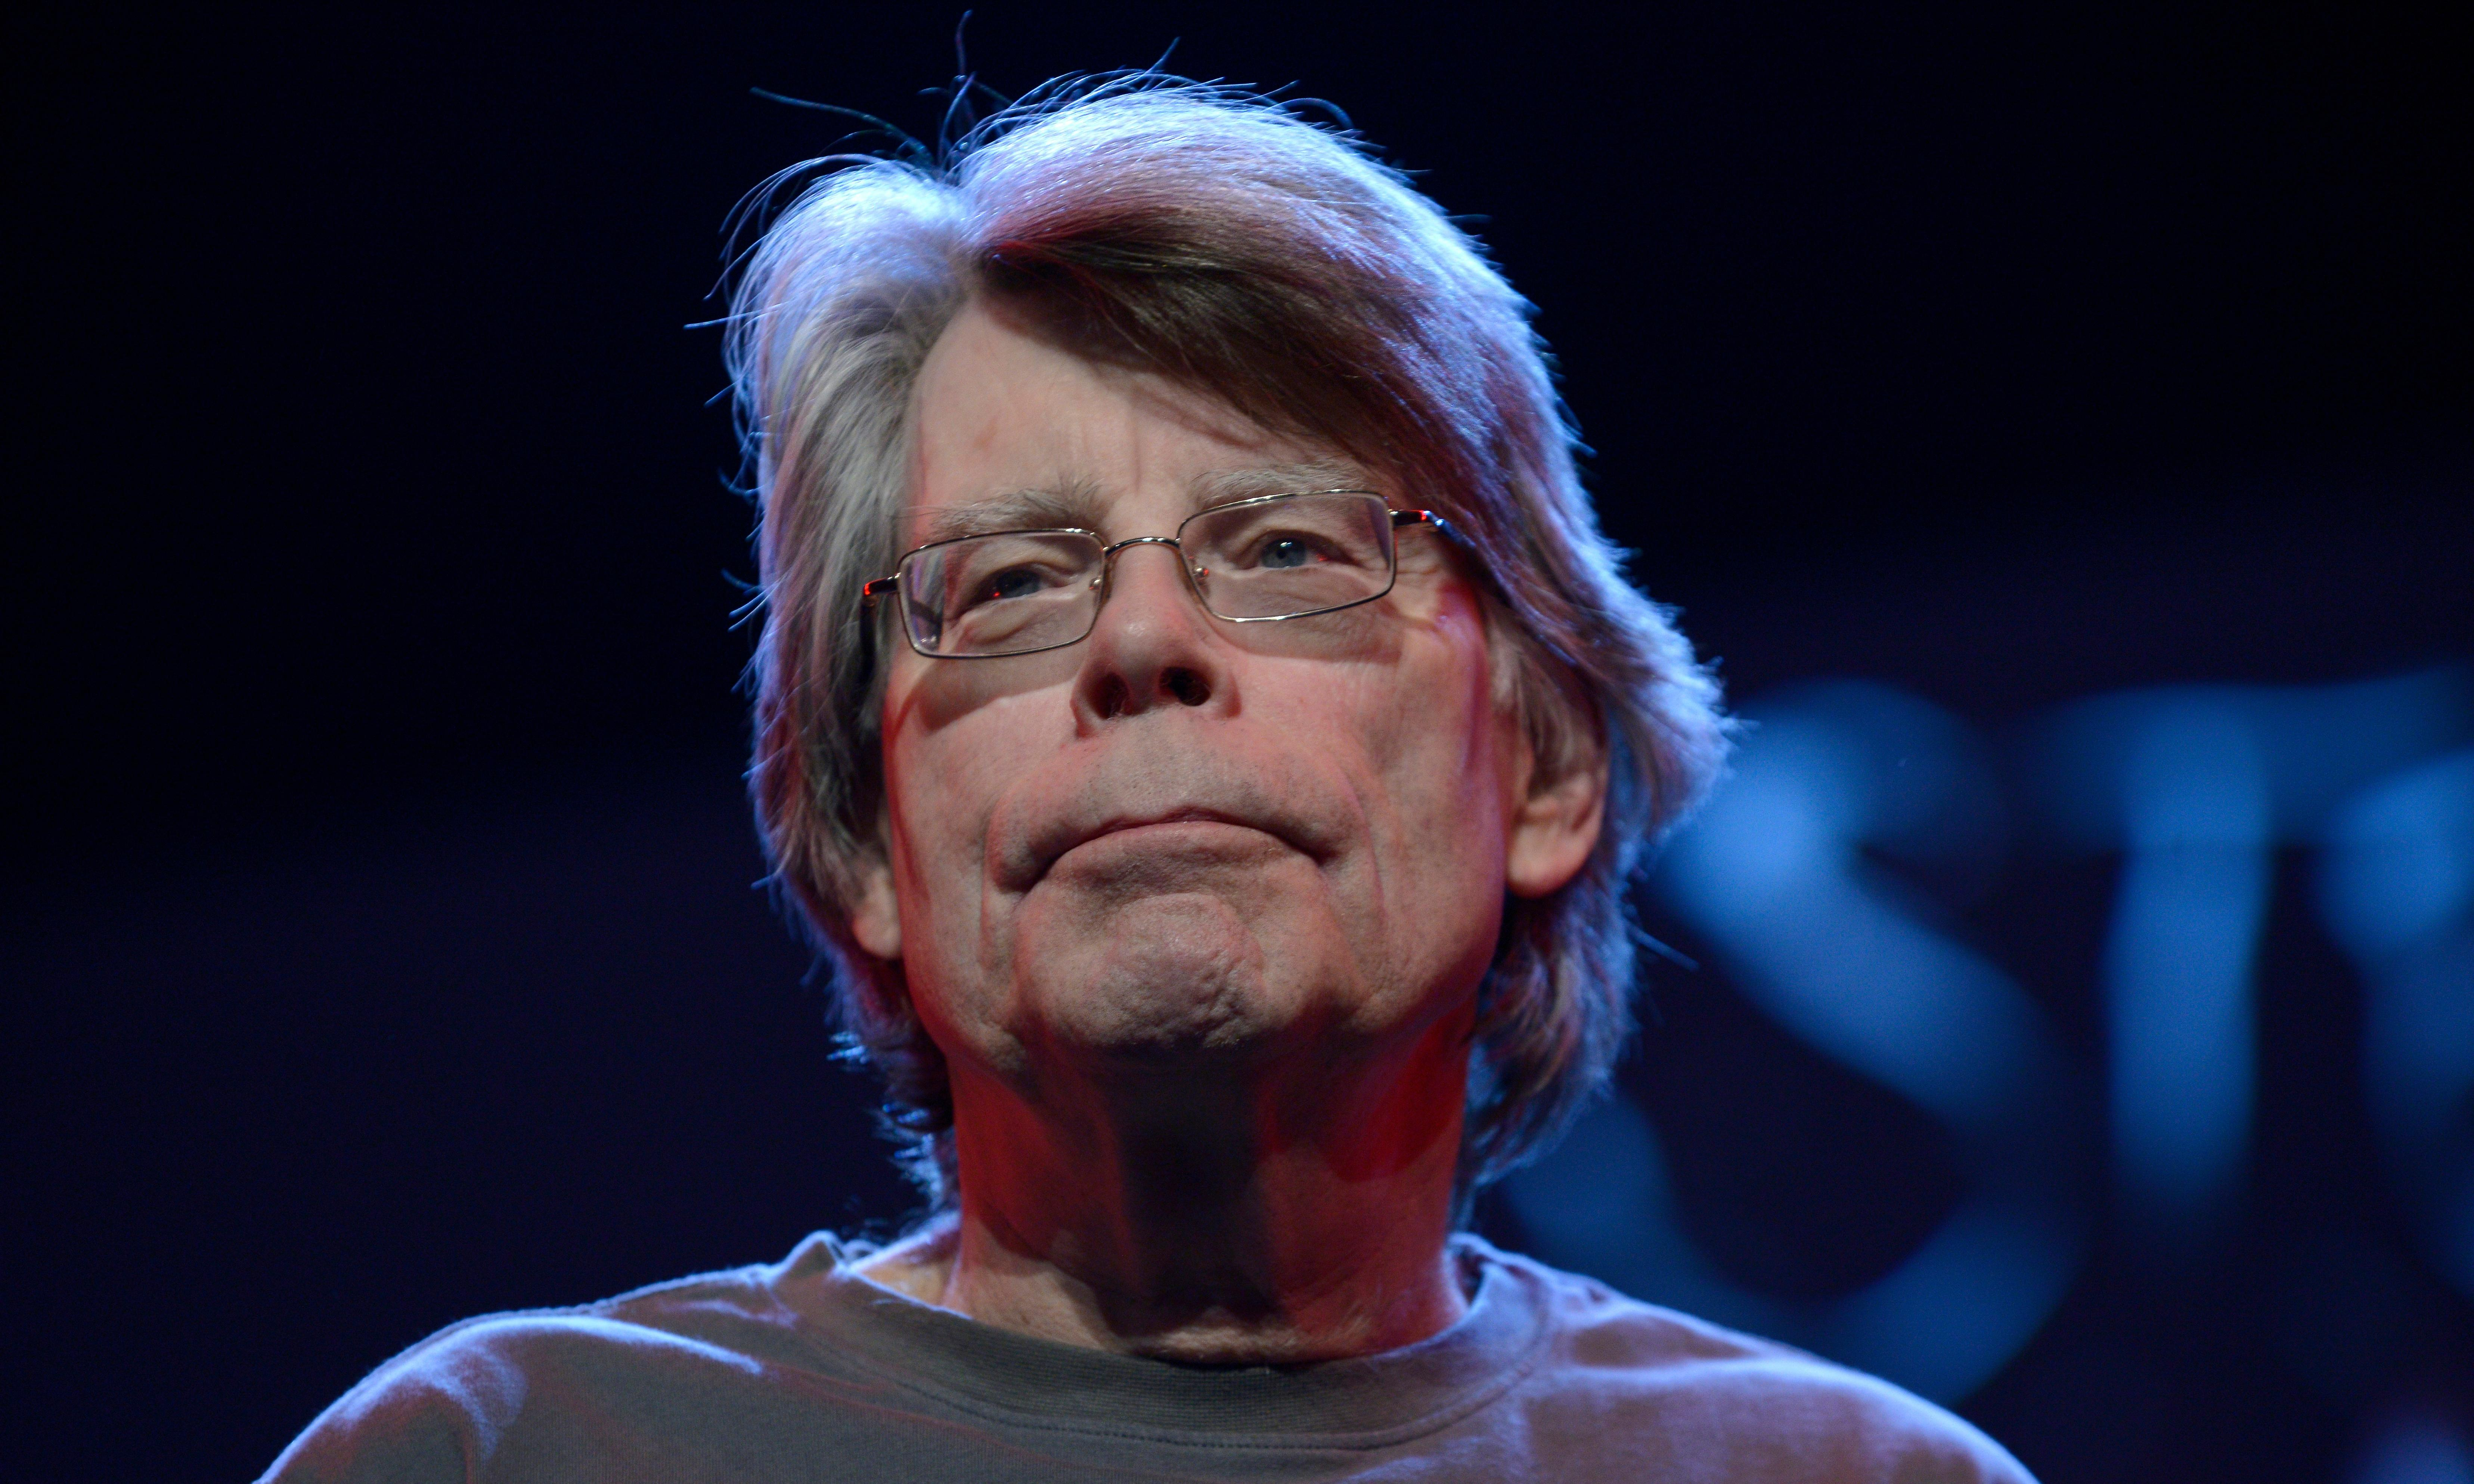 Stephen King faces backlash over comments on Oscars diversity